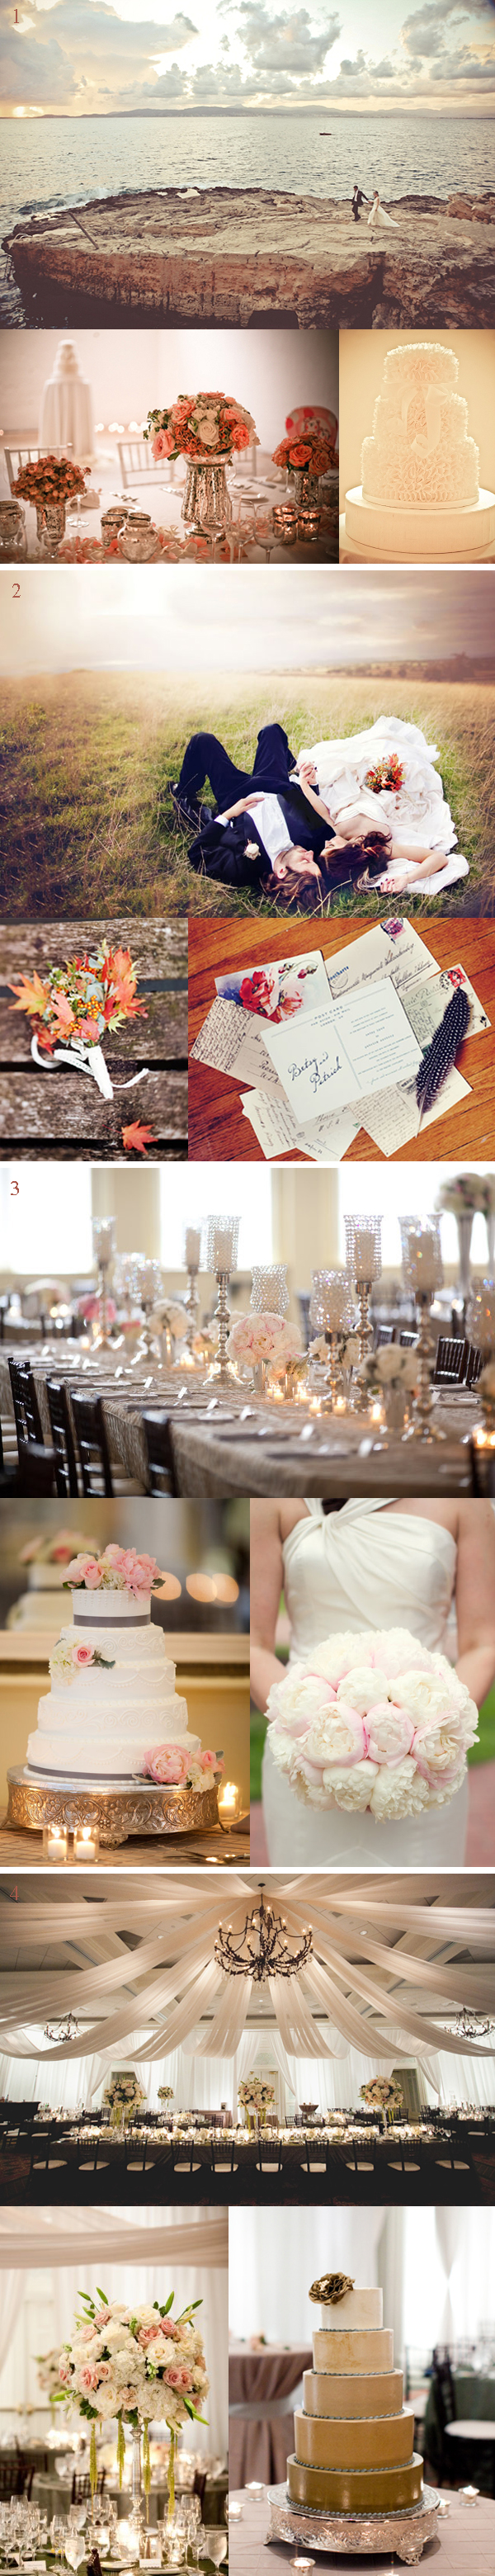 Pretty much everything about this is beautiful.  #wedding #ceremony #reception #style